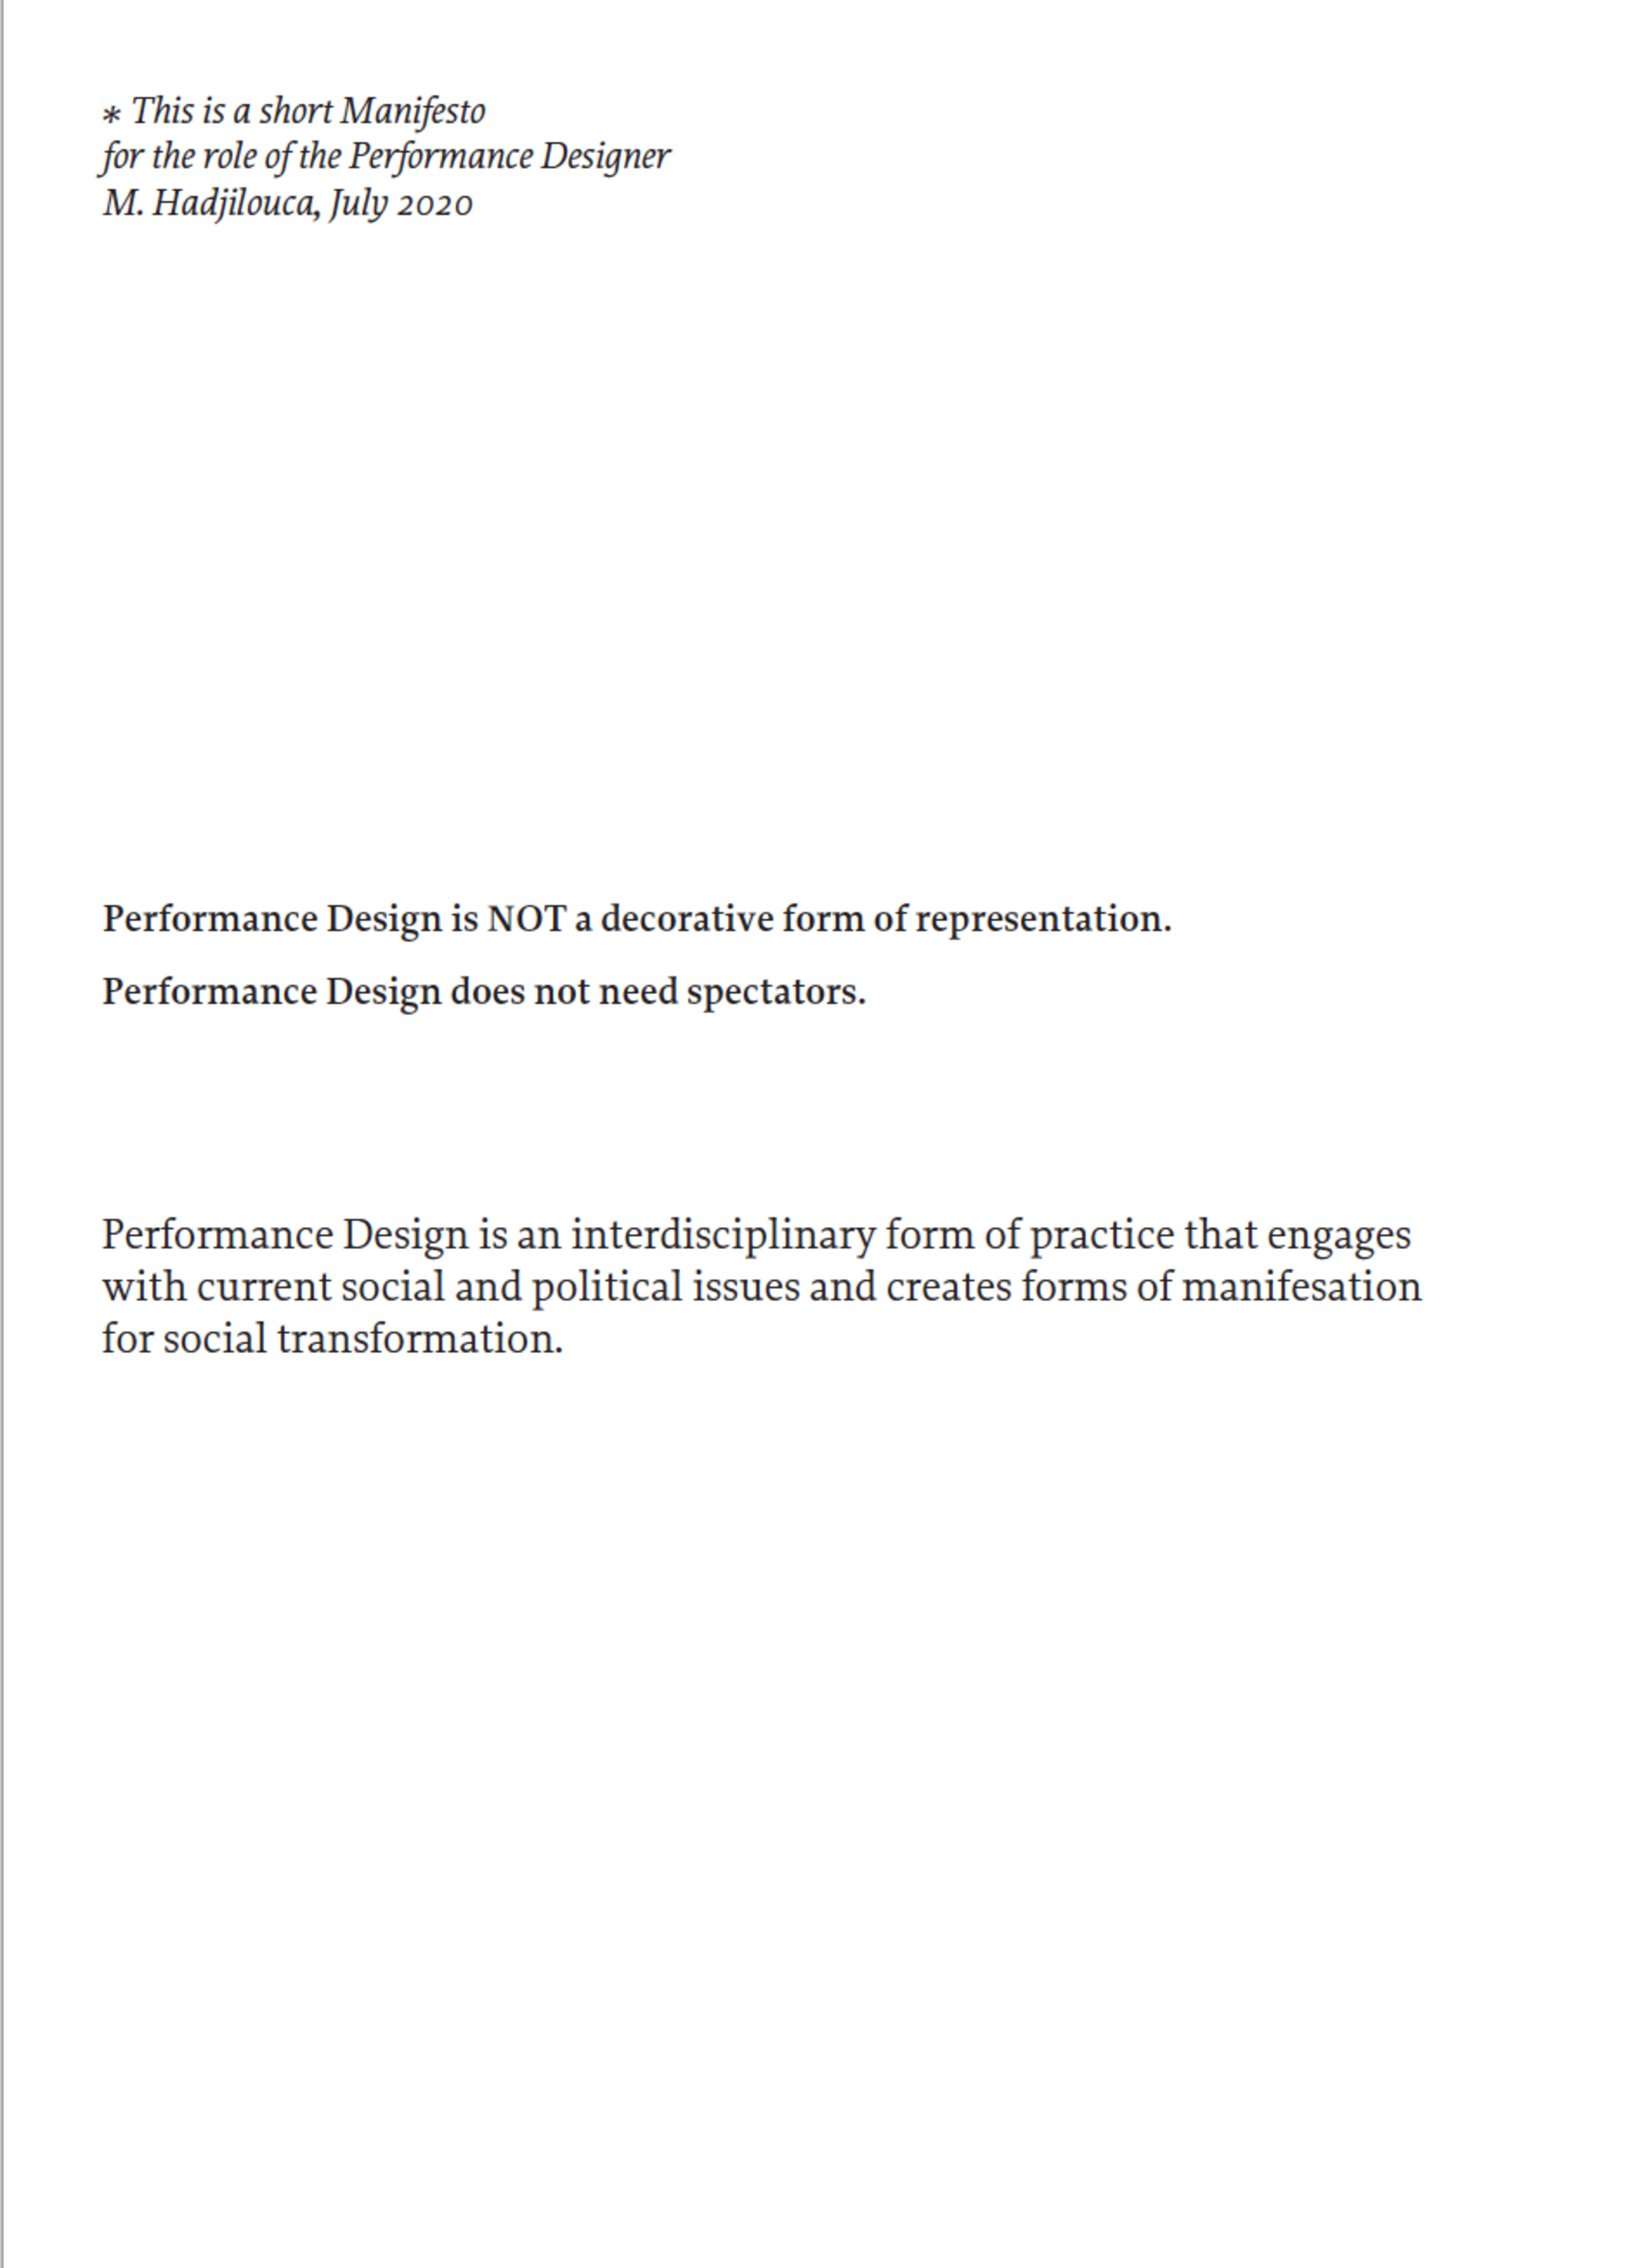 The Manifesto for the role of the Performance Designer